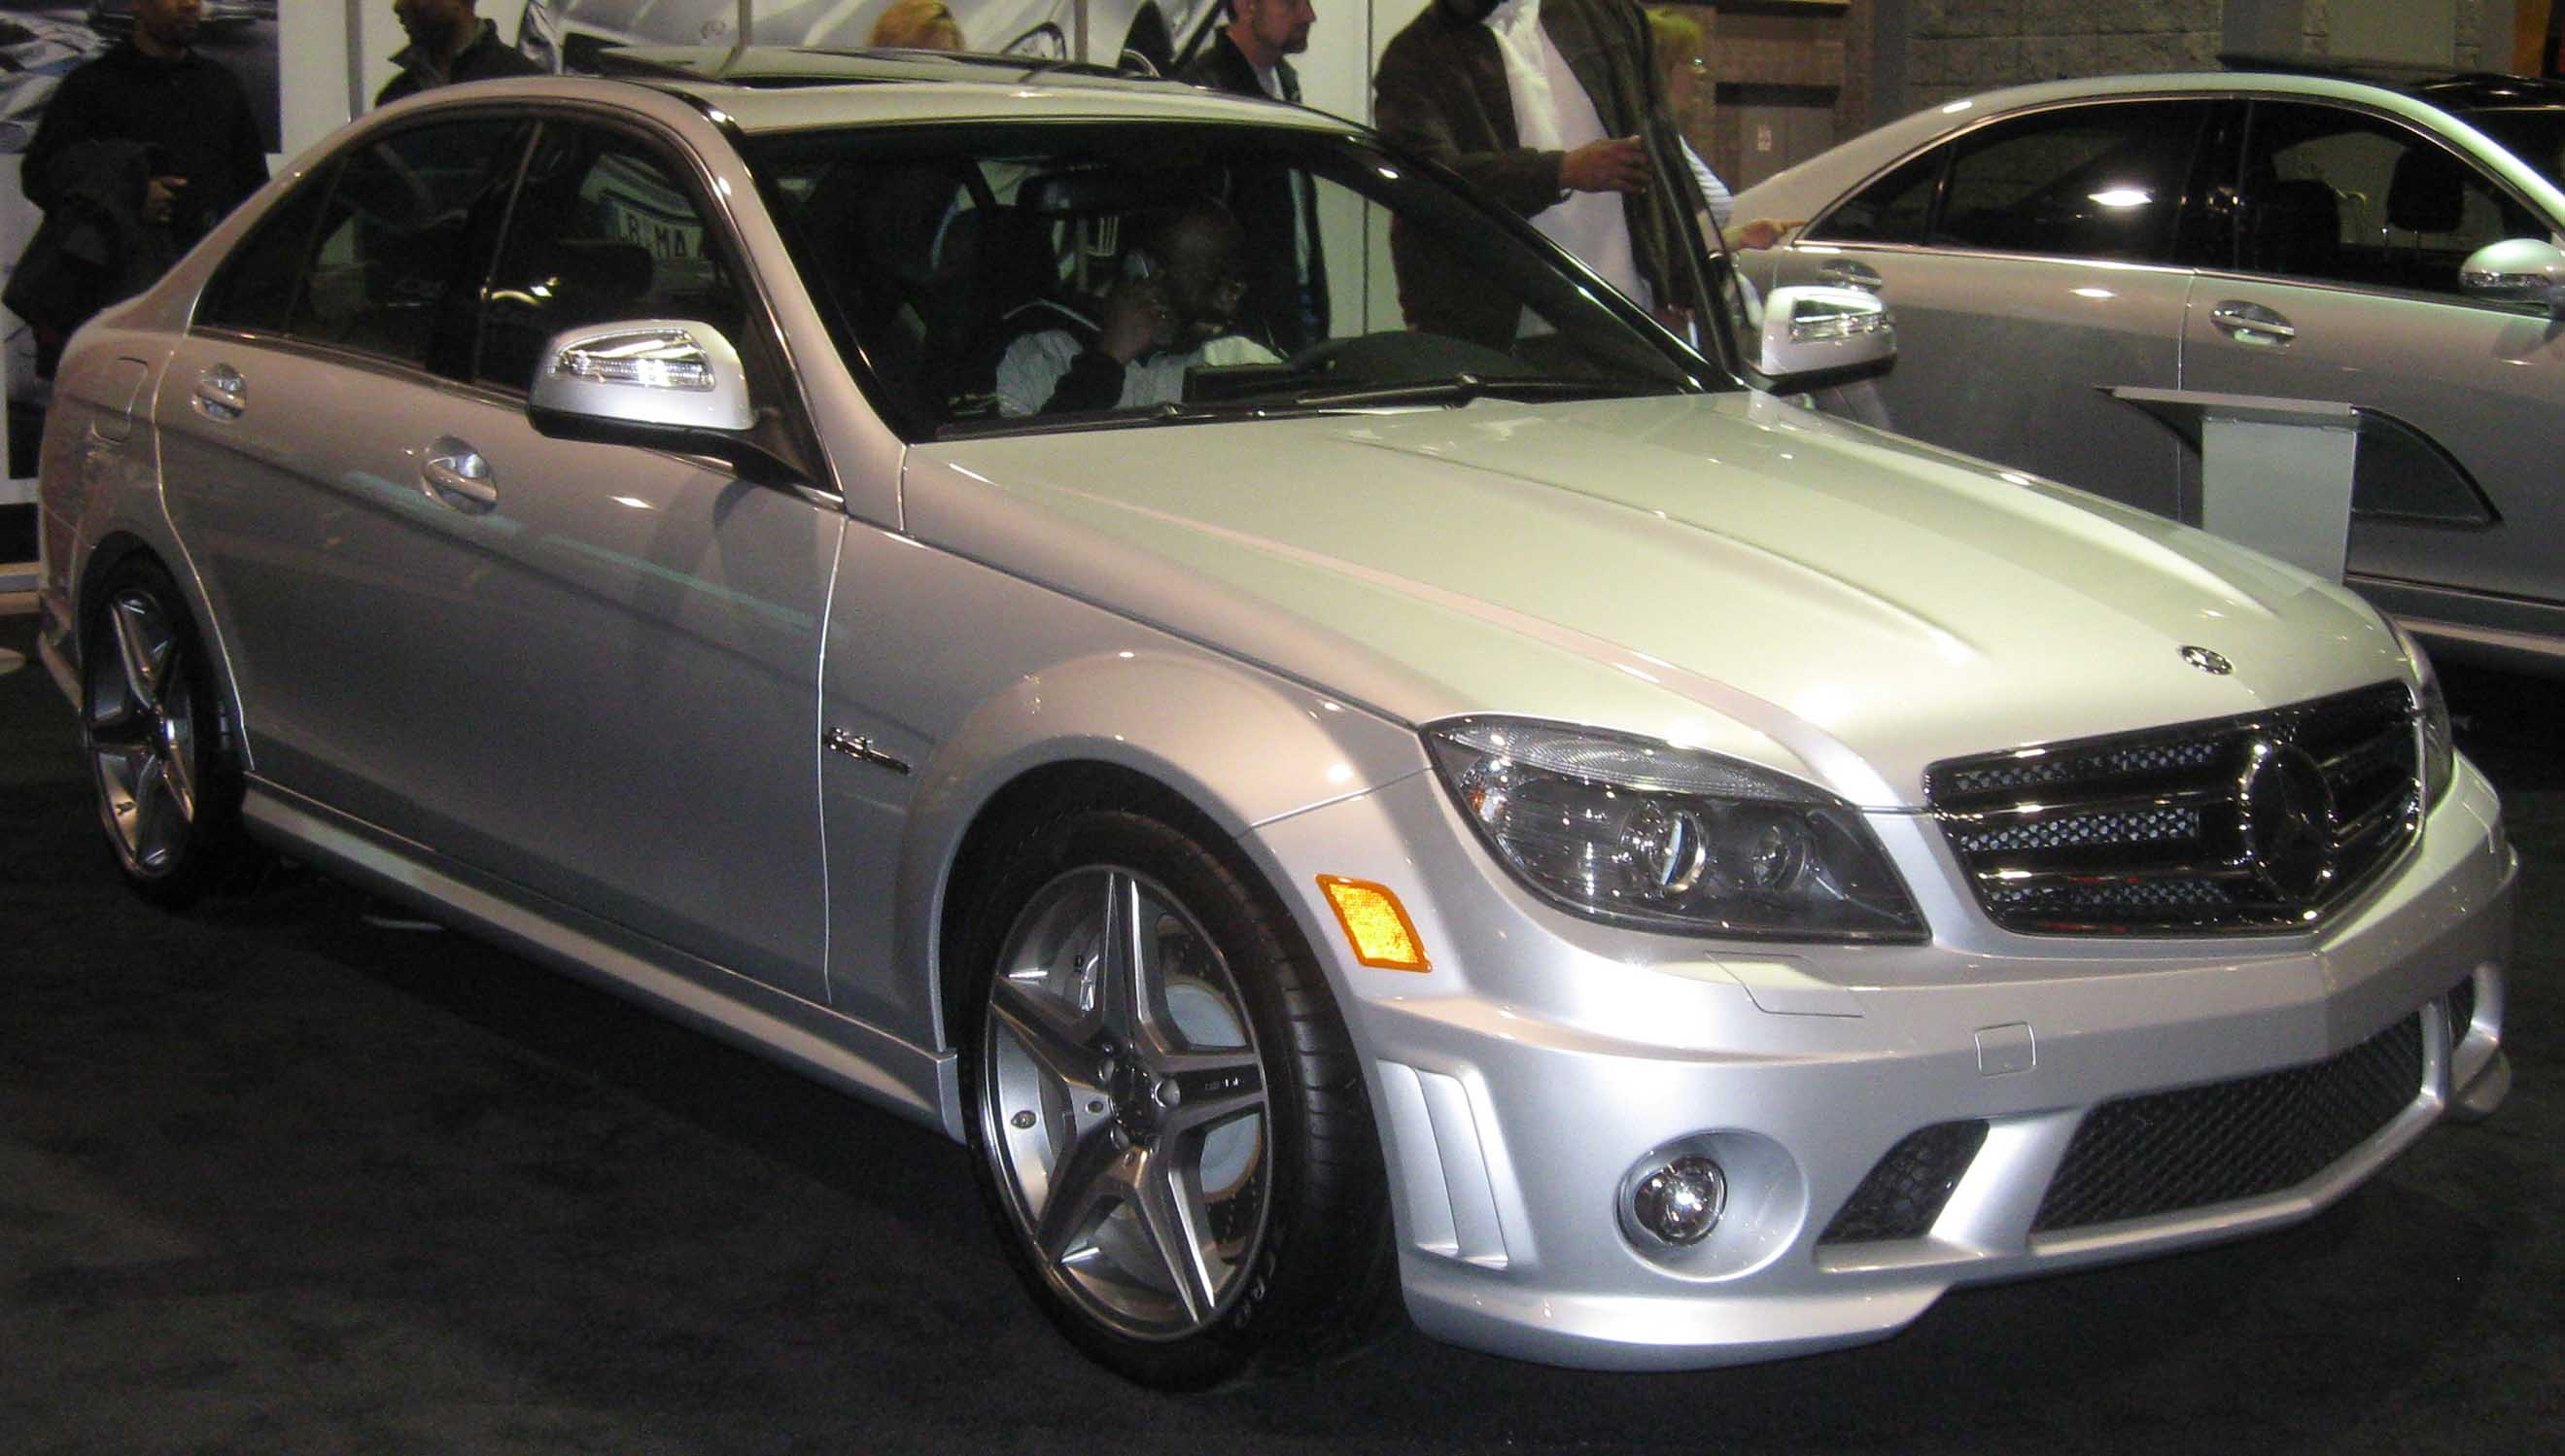 Mercedes Benz C63 Amg Wiki >> File:2009 Mercedes-Benz C63 AMG--DC.jpg - Wikimedia Commons